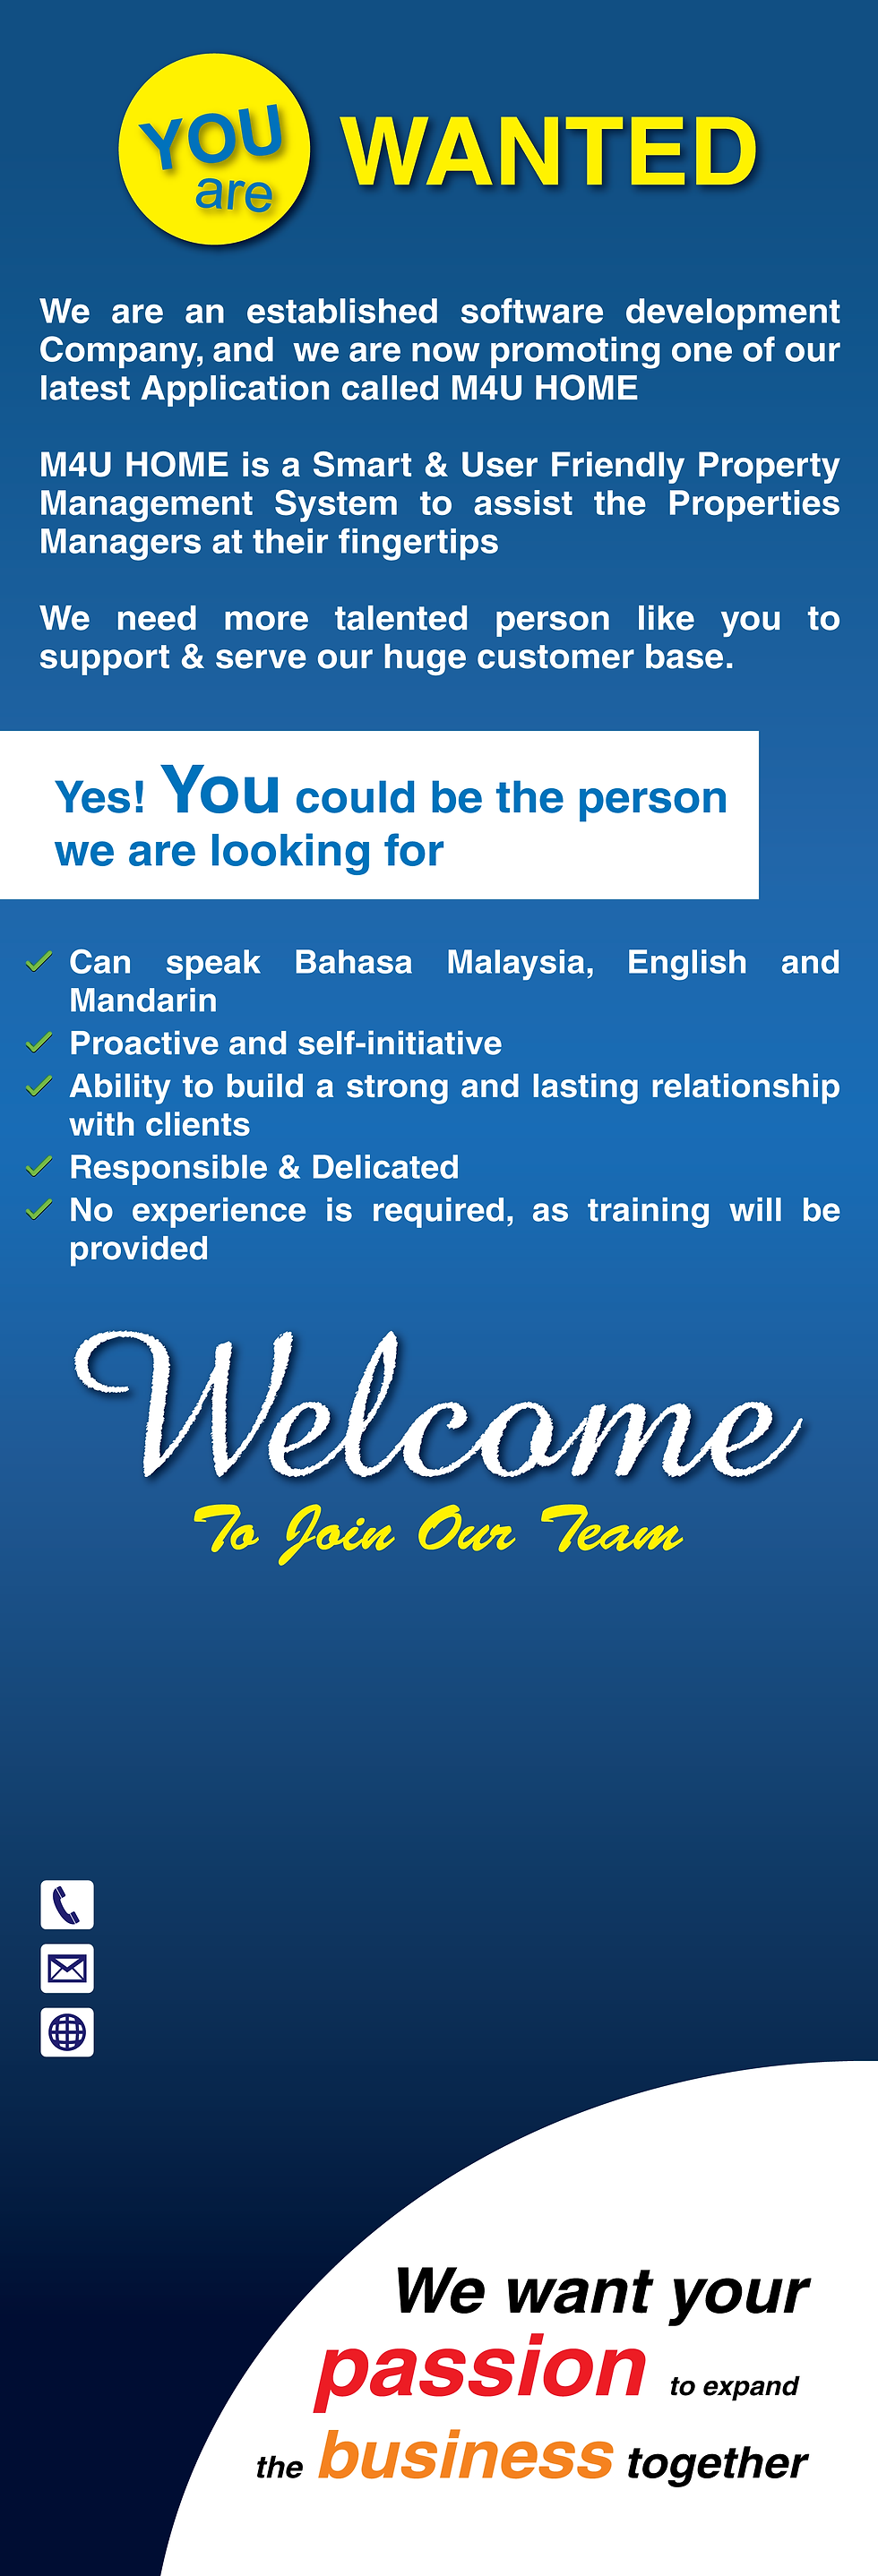 Landing-Page_Vacancy_Eng-Version-PG2.png